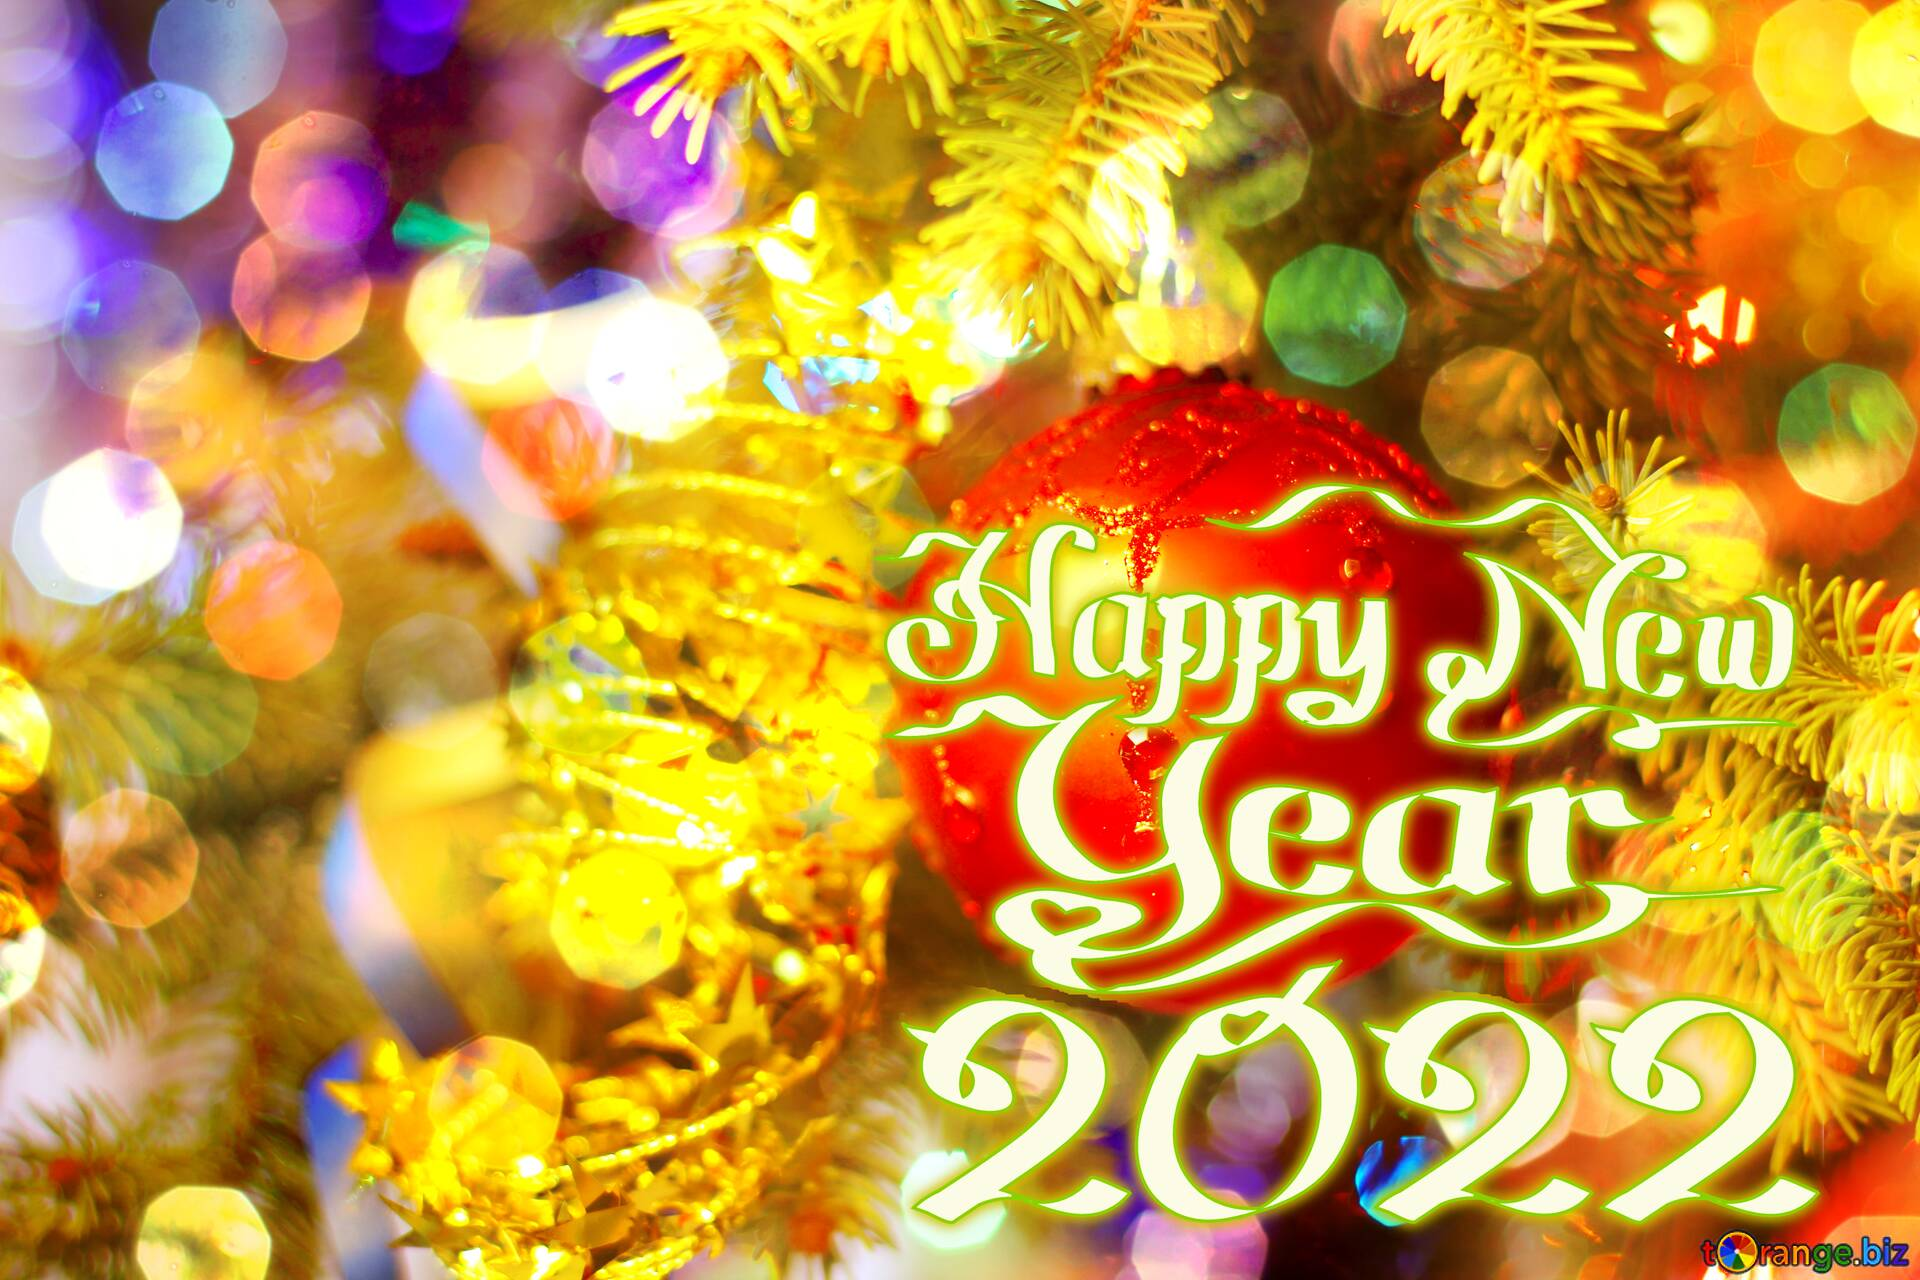 Download free picture Background for happy new year 2021 on CC-BY License ~ Free Image Stock ...